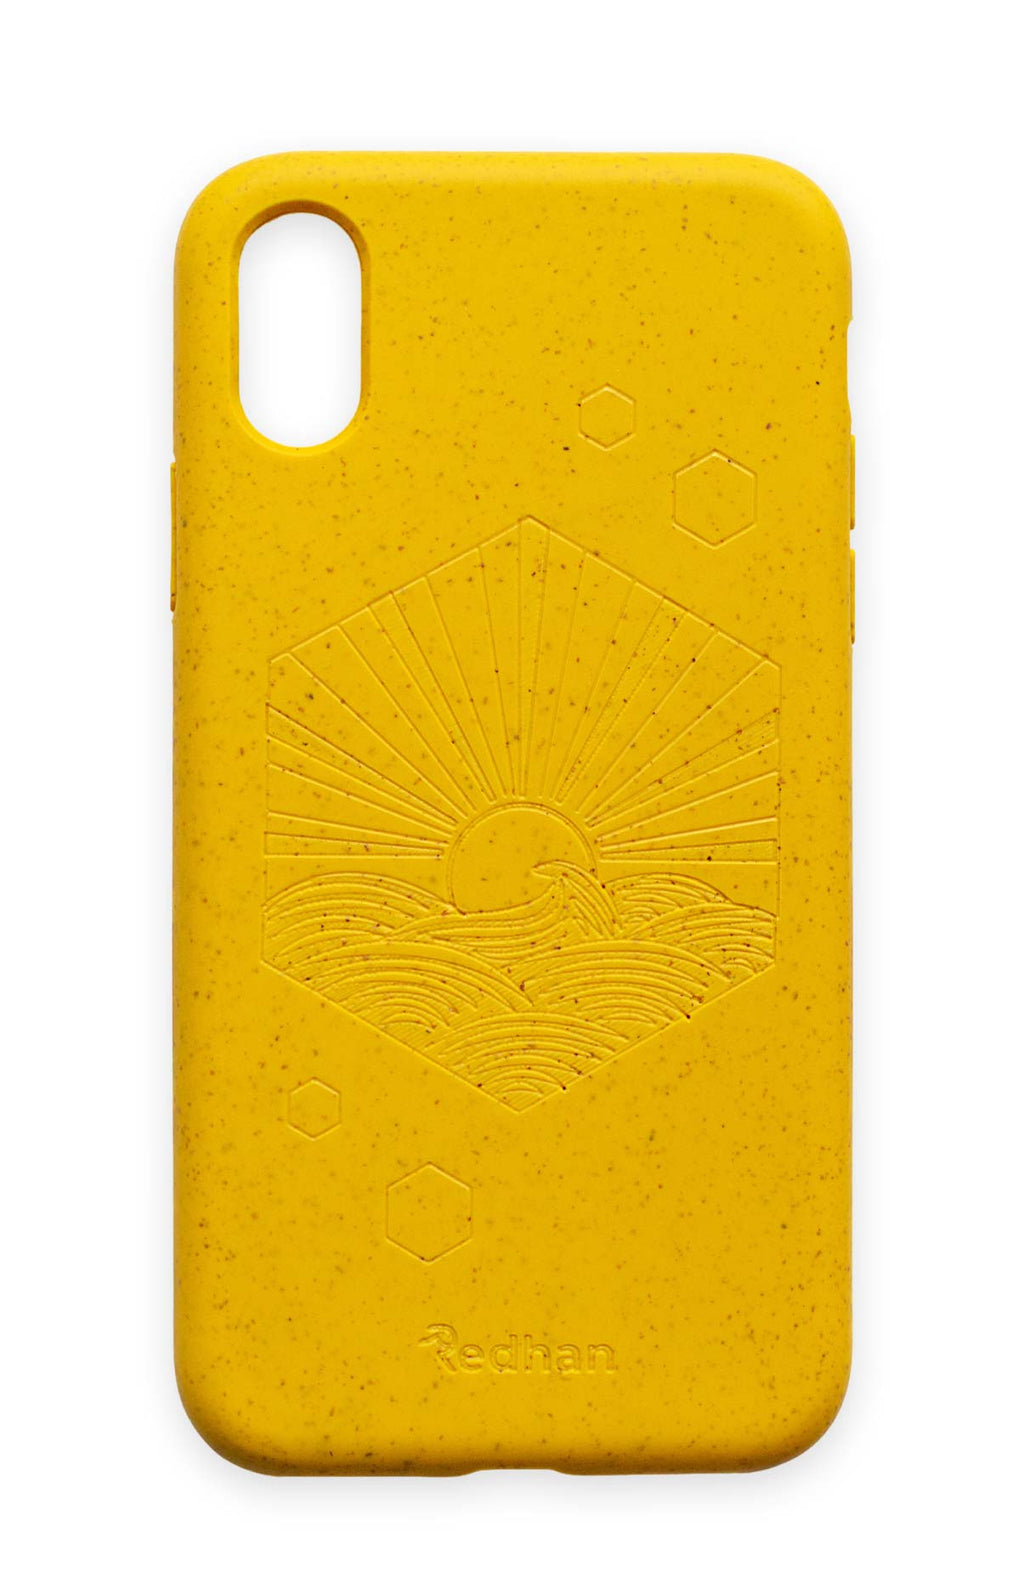 Eco-Friendly Phone Case Yellow, iPhone XR Phone case in Yellow, Biodegradable